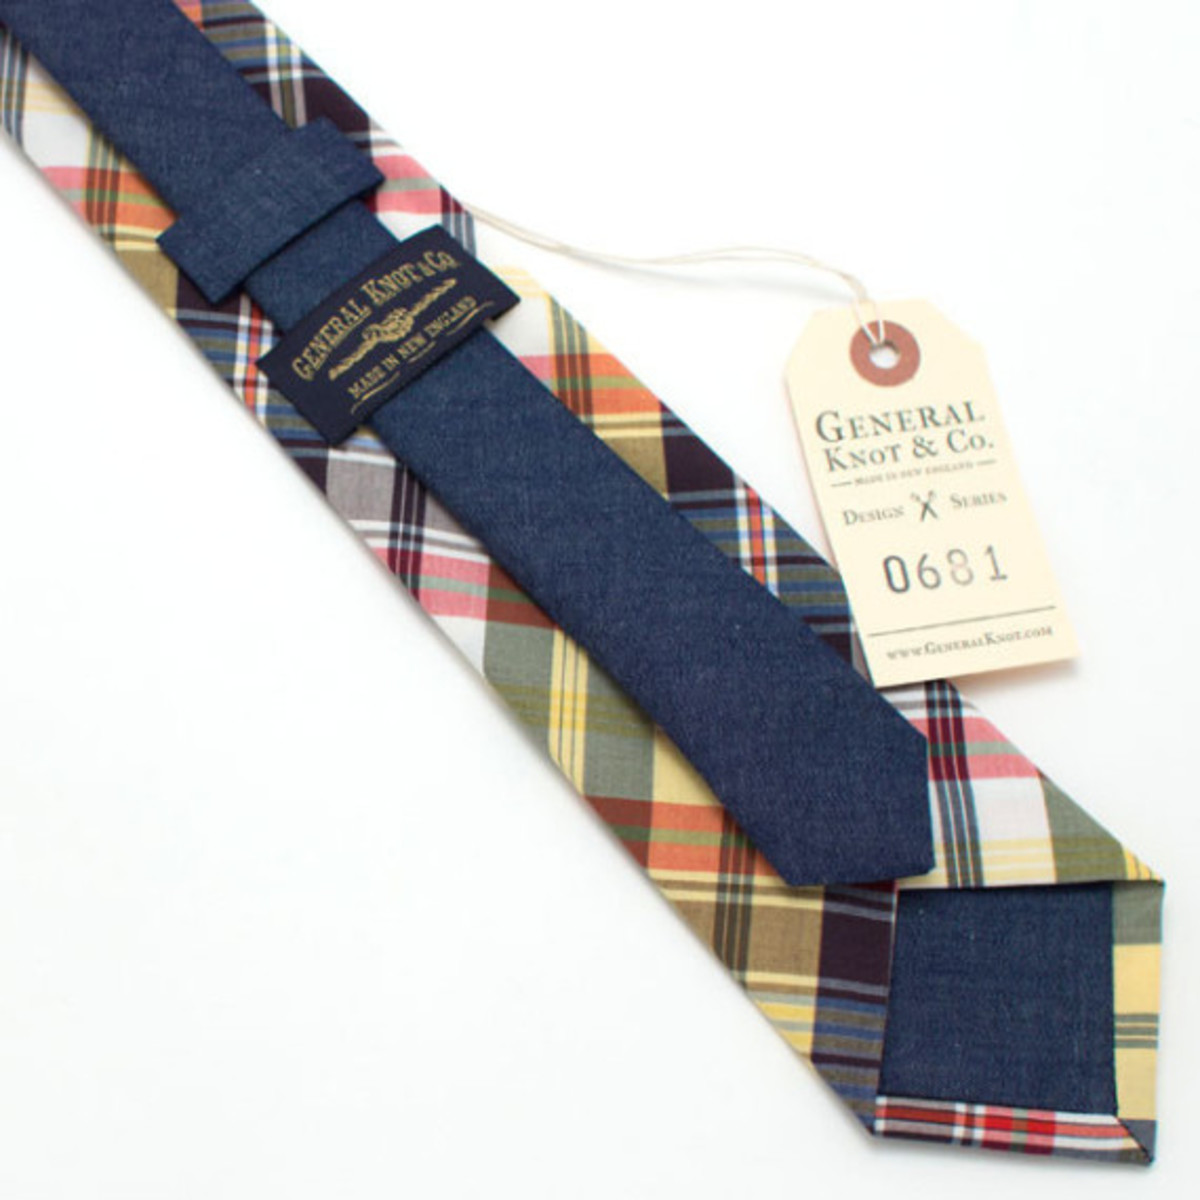 general-knot-and-co-portland-family-neckwear-collection-07